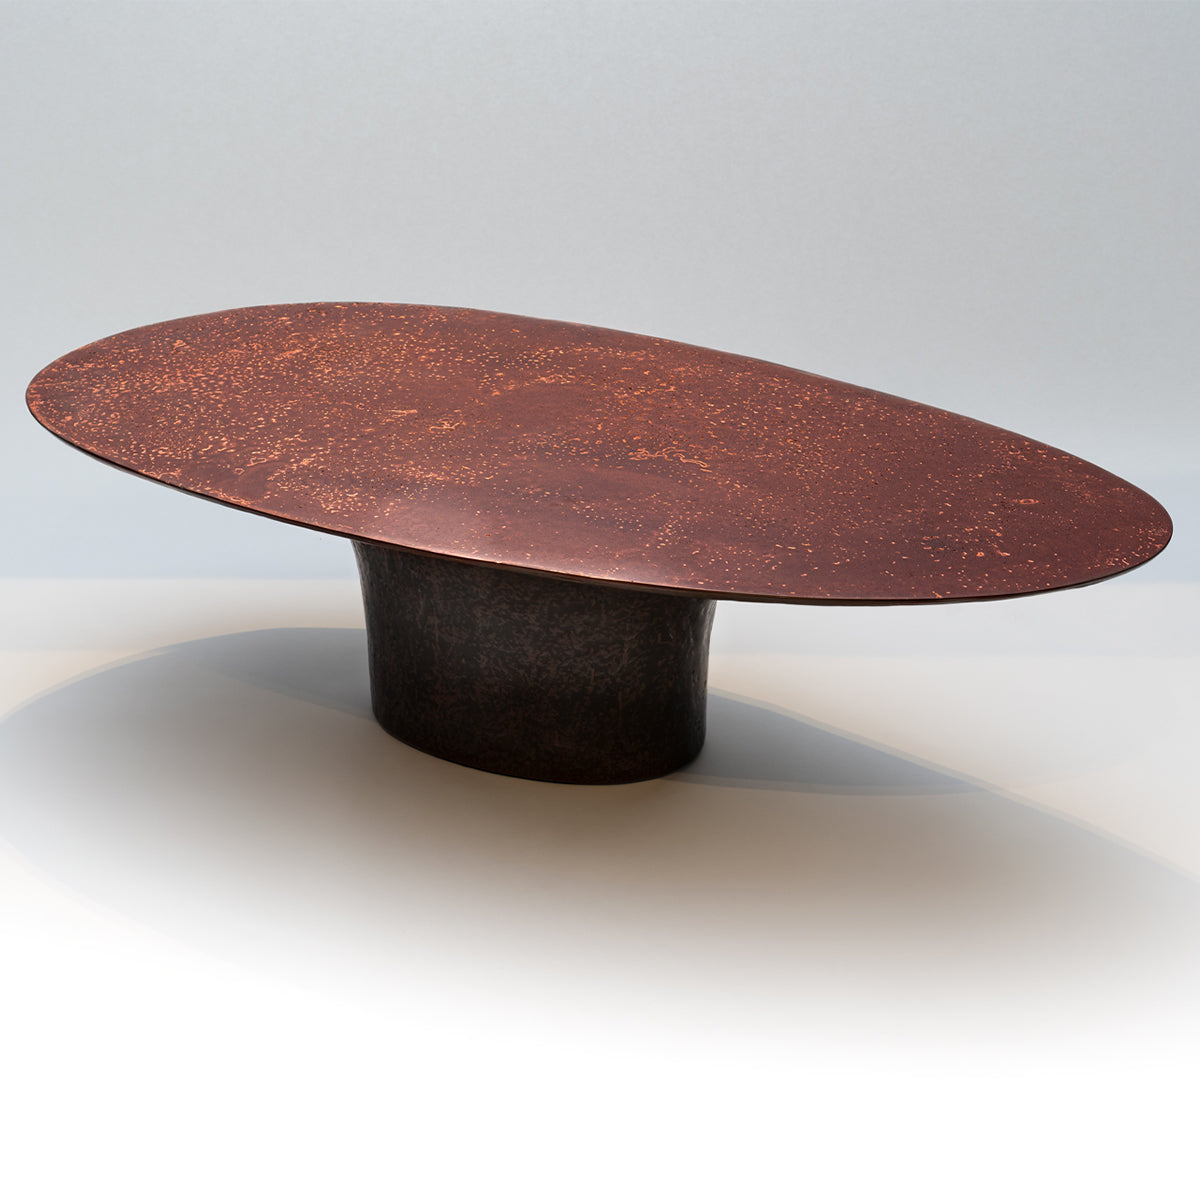 NR19/V1 COPPER, Center and dining tables//Tables à manger et de séjour, PRIVATISELECTIONEM  - SORS